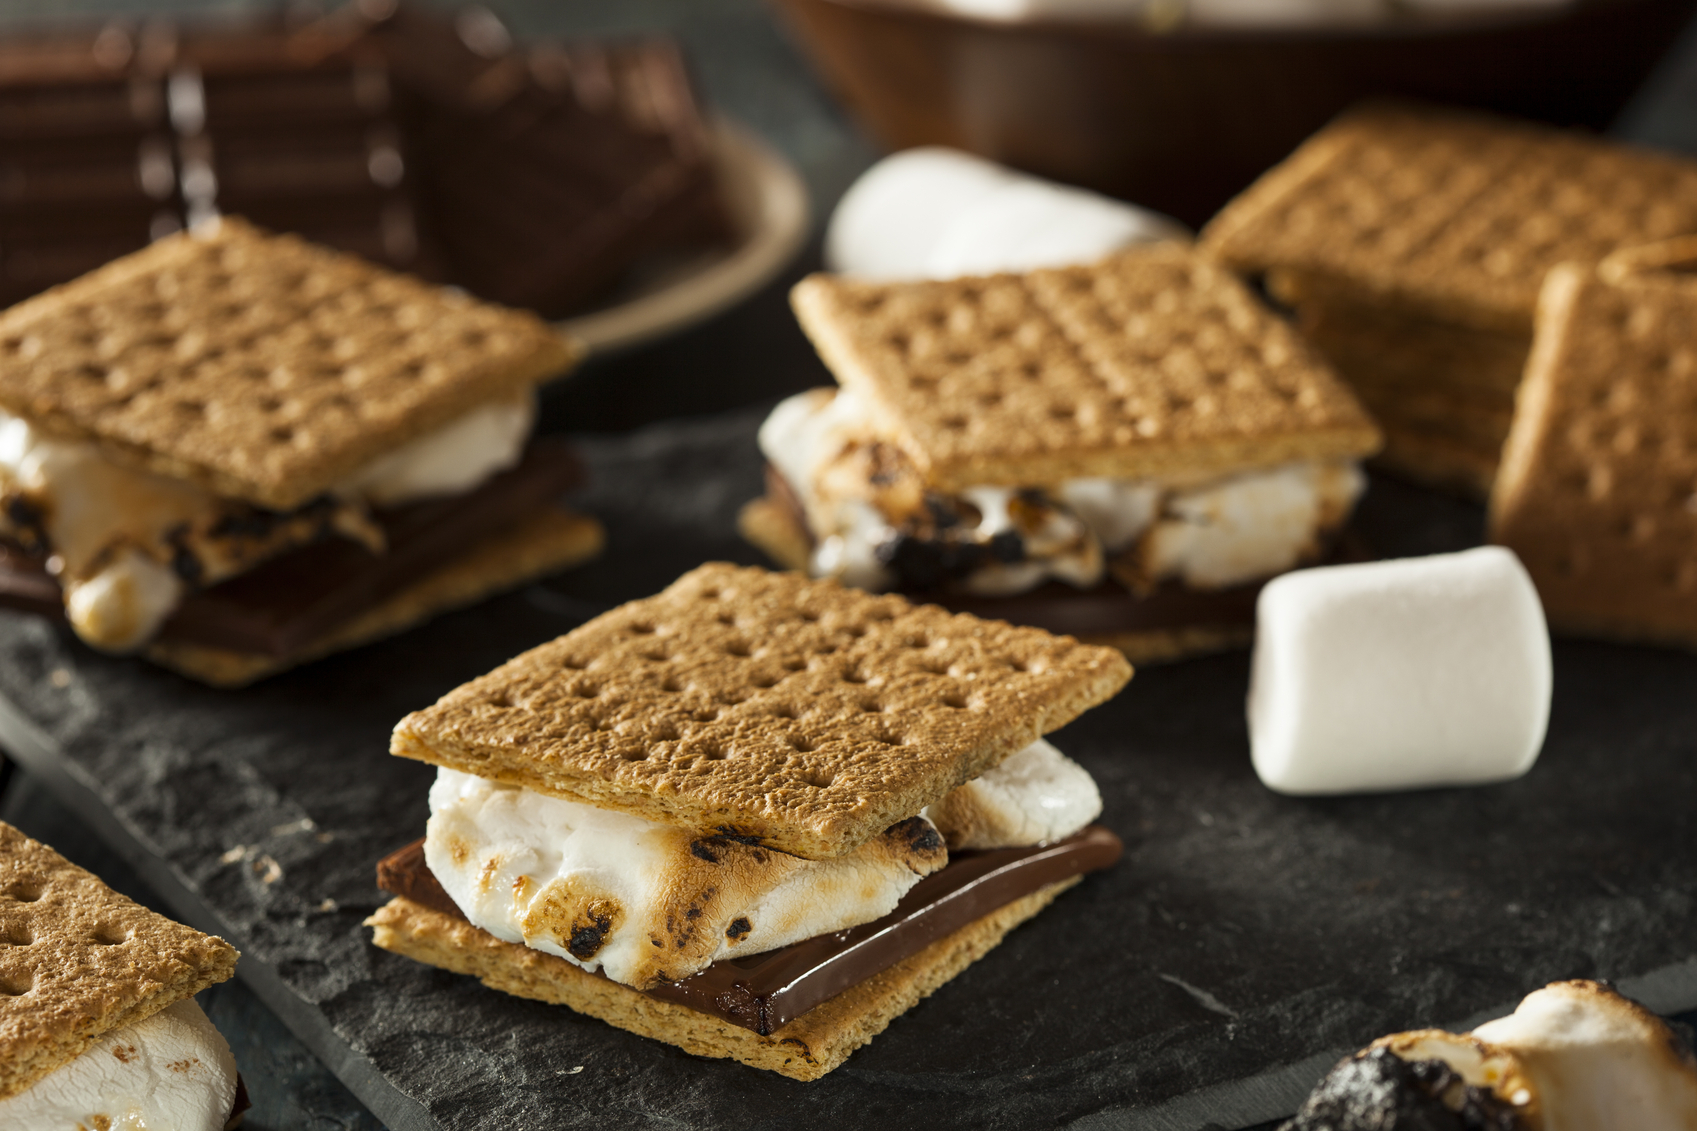 A counter top hosts seven s'mores featuring graham crackers, white marshmallows and thick chocolate slices.  The s'more dessert sandwiches are thick.  Each graham cracker, marshmallow filling and dark chocolate filling rests at a slightly different angle causing every dessert sandwich to look unique.